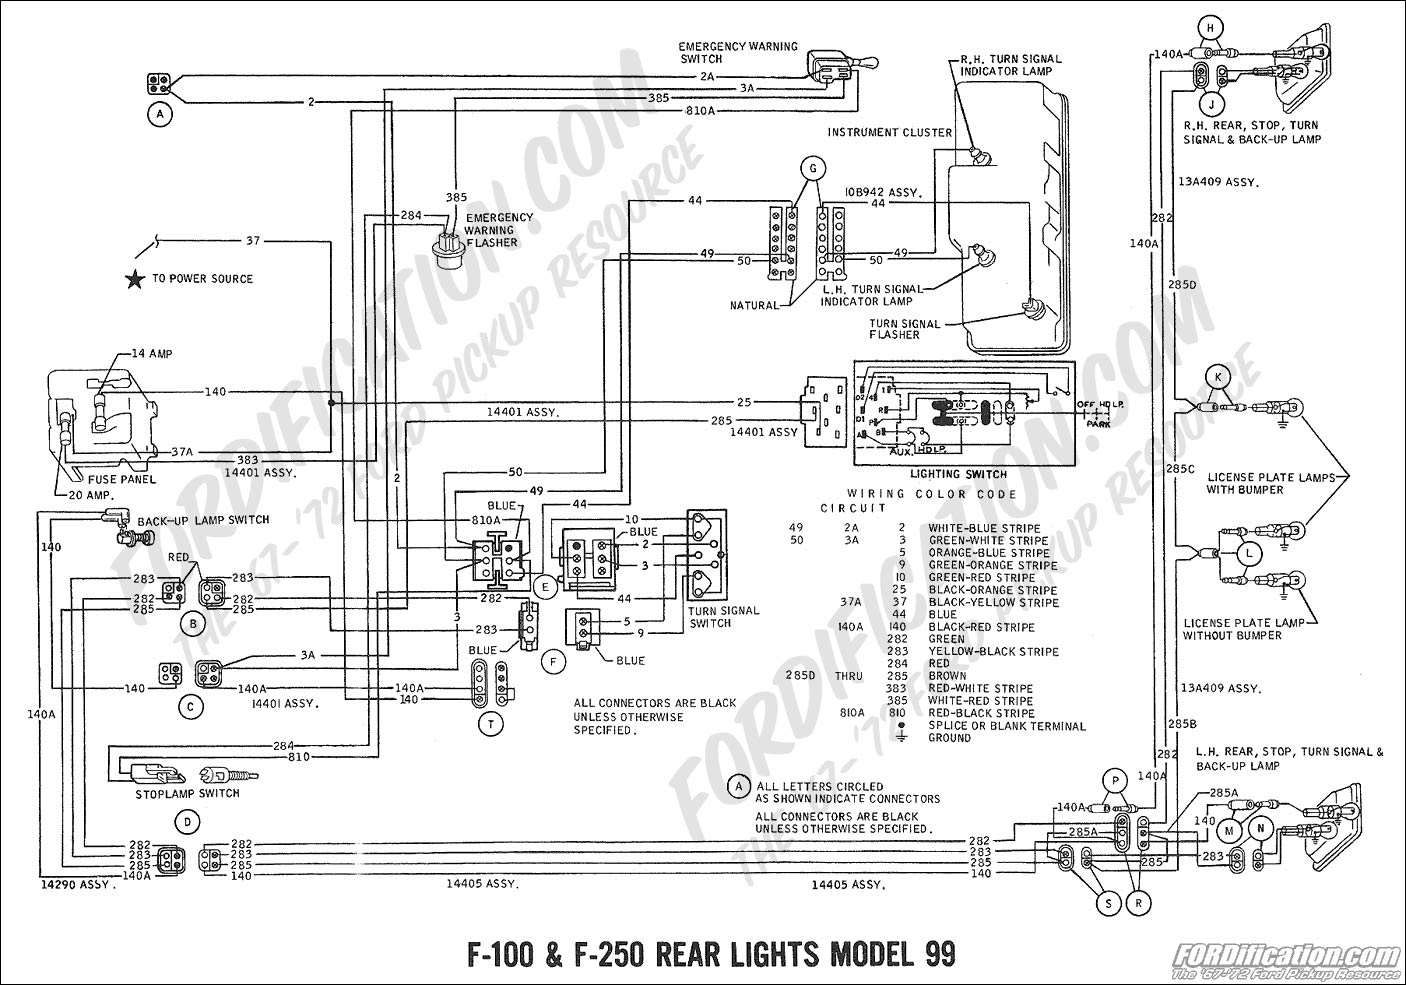 1996 dodge ram van wiring diagram